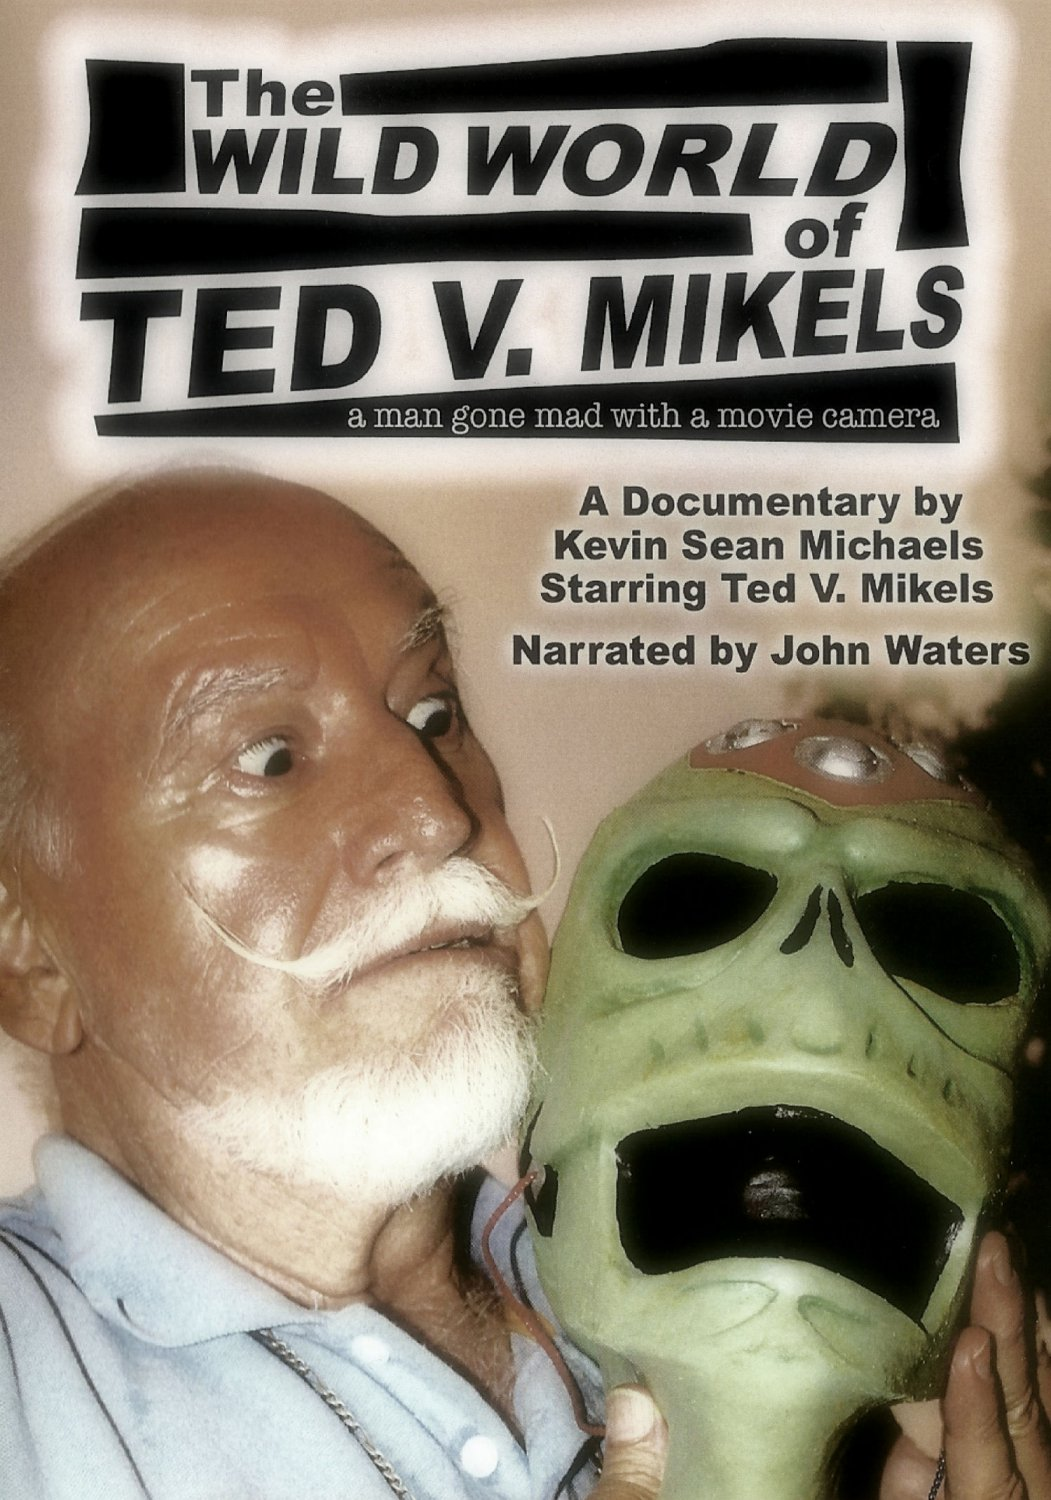 The Wild World of Ted V. Mikels (USB) Flash Drive